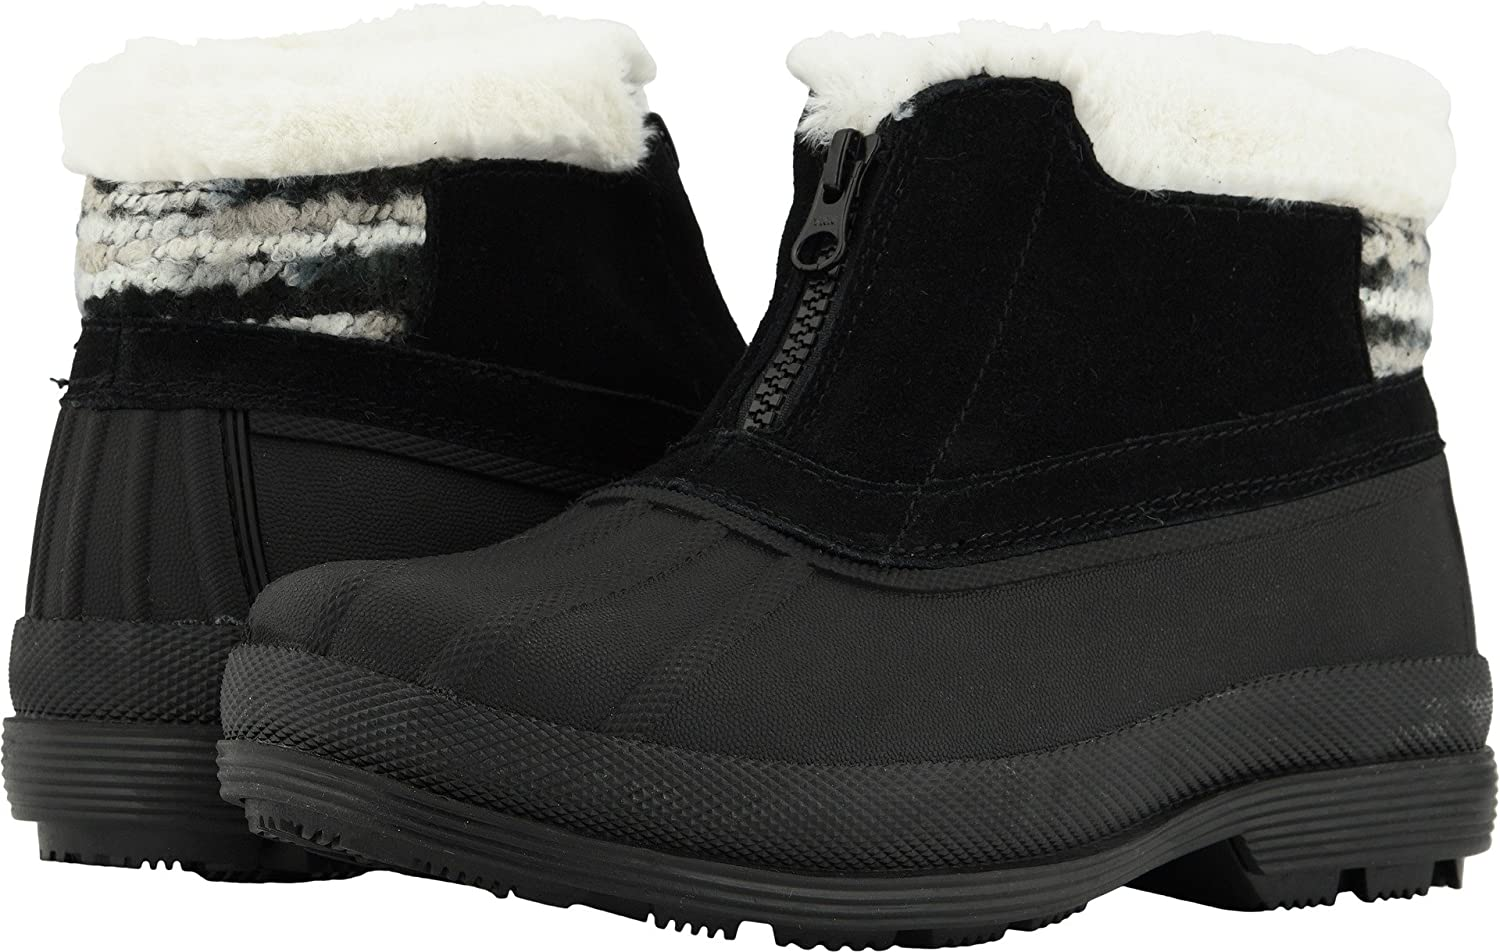 Propet Women's Lumi Ankle Zip Snow Boot B078YP9NSG 10 WIDE Wide US|Black/White